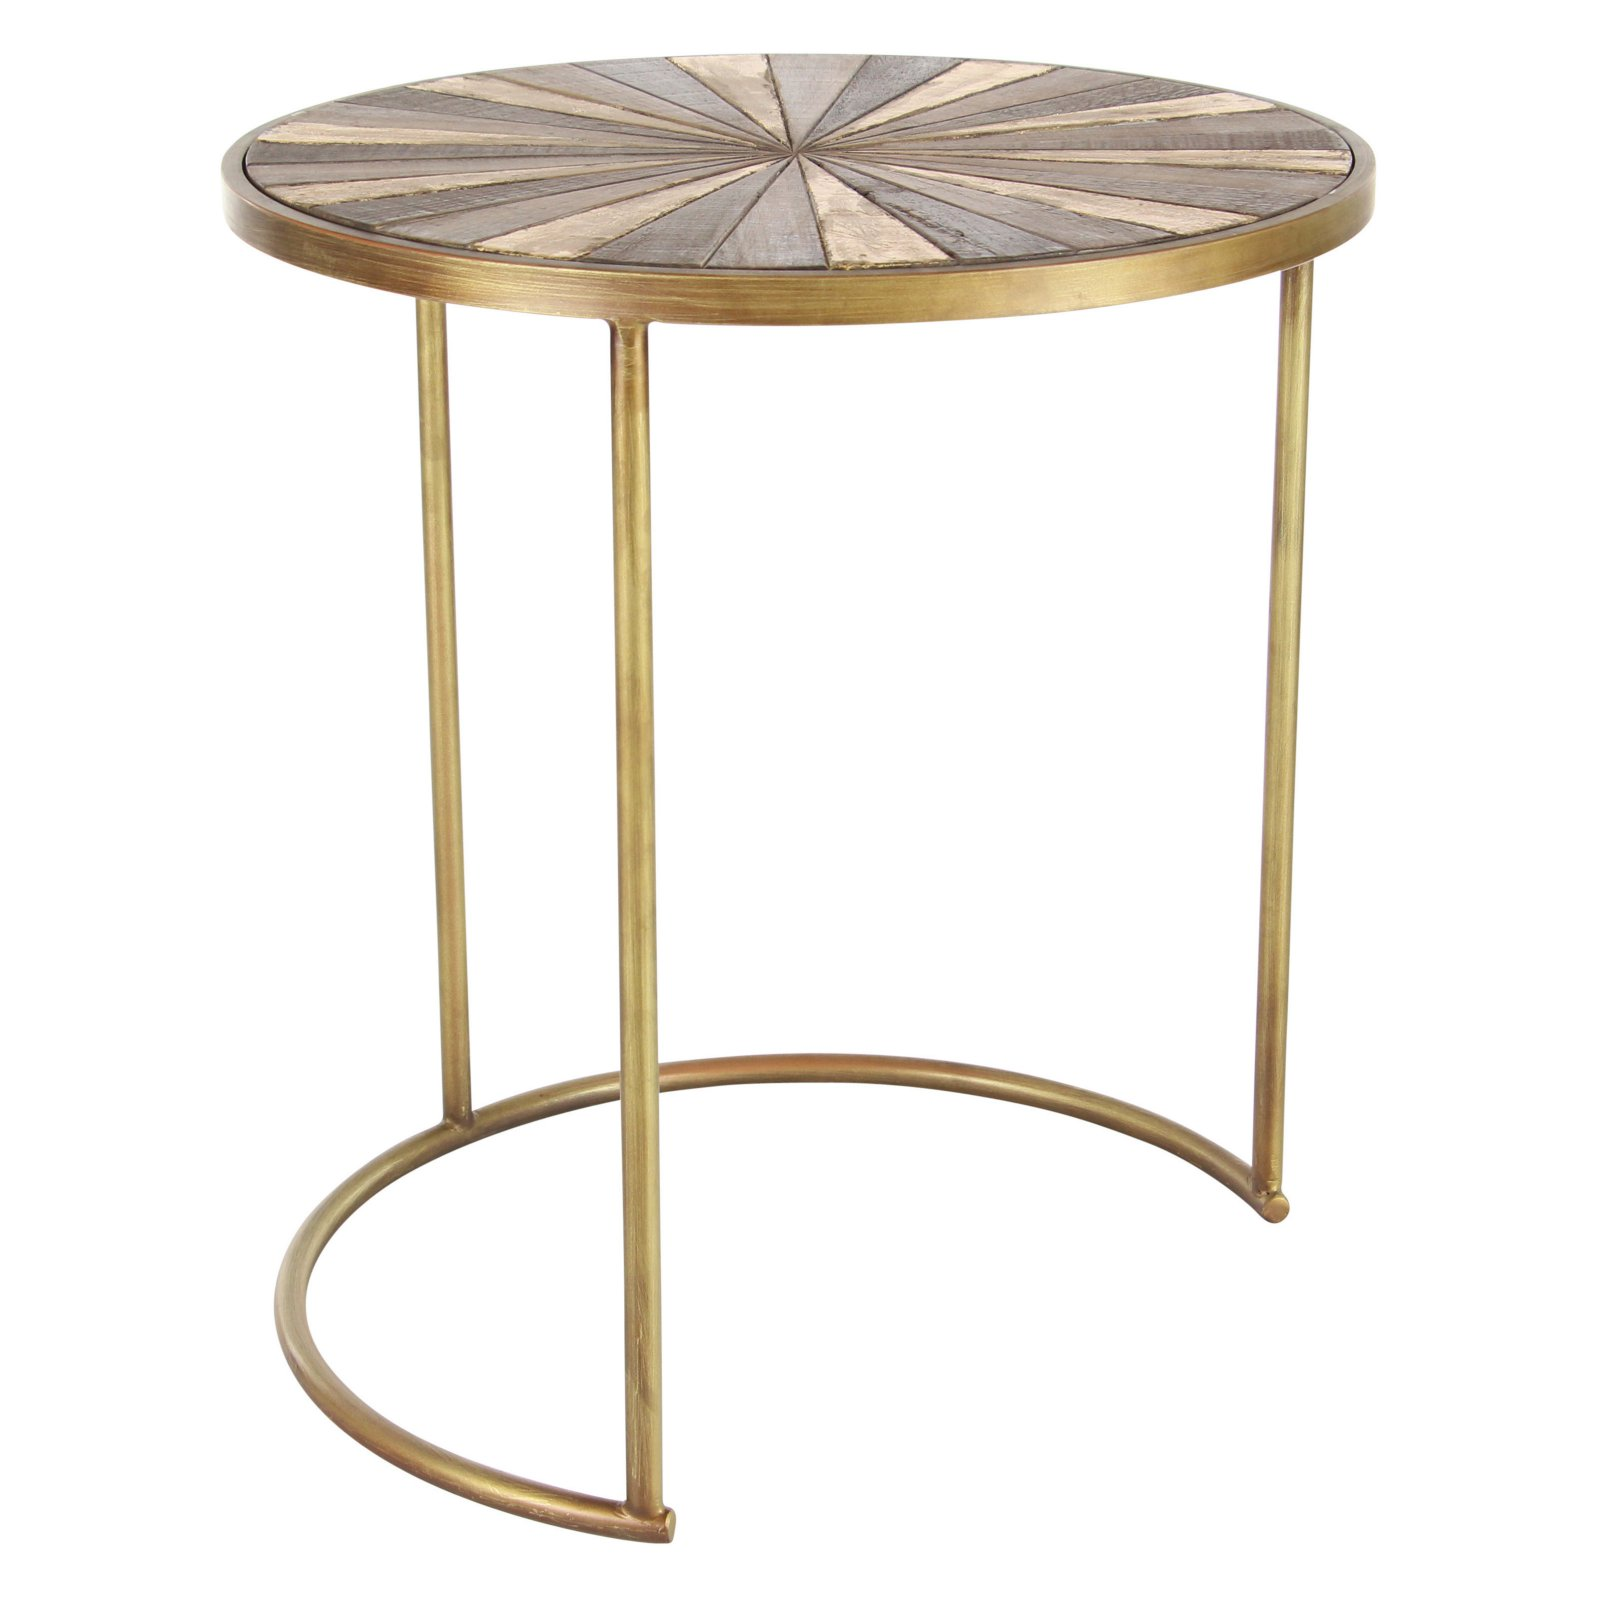 decmode round metal and wood accent tables set scale brass table stacking ikea marble asian style bedside lamps white coffee glass inch cover furniture pieces drop leaf kitchen